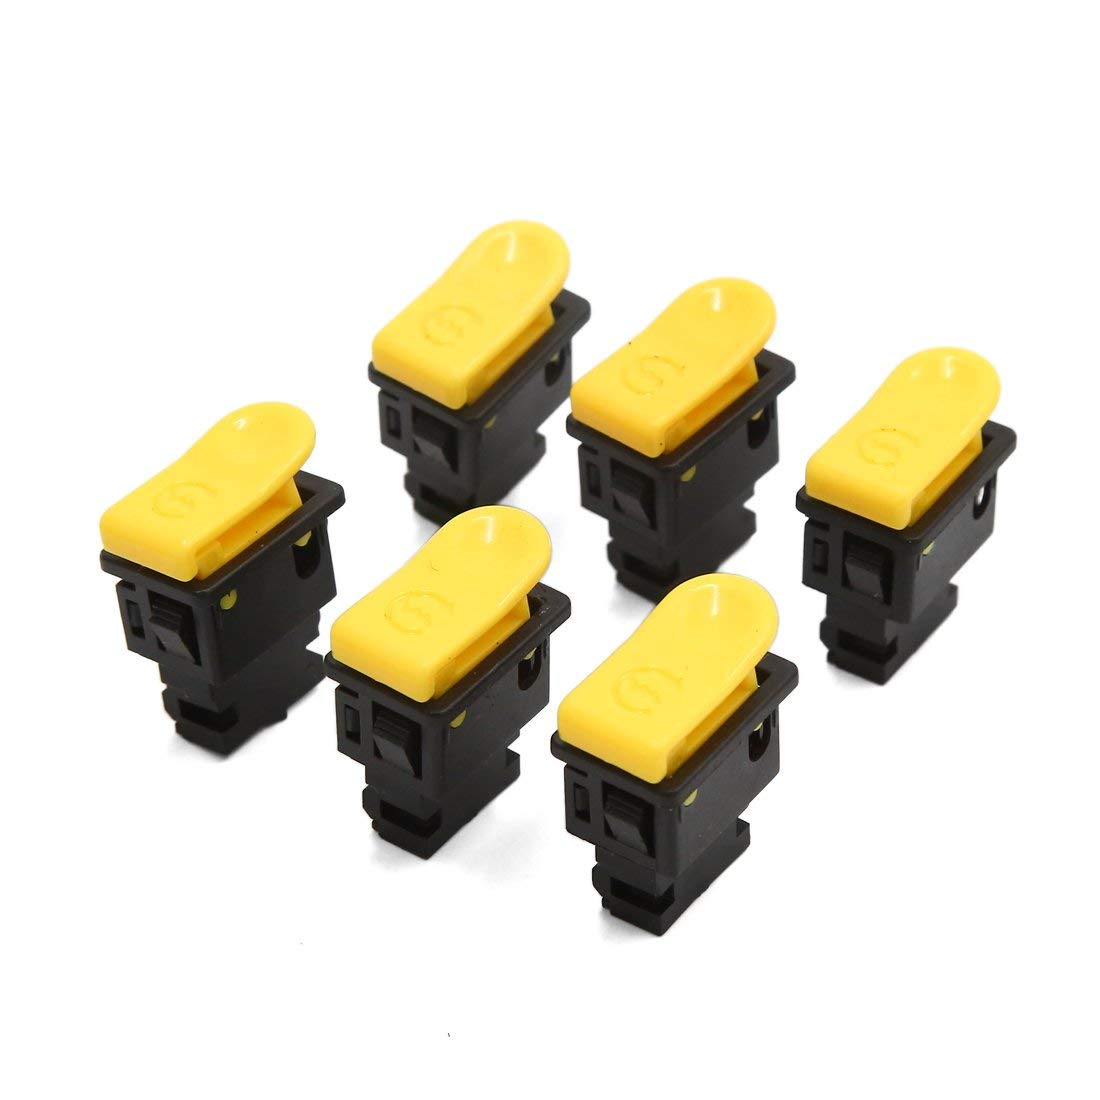 uxcell 6pcs 2 Terminals Motorcycle Electric Power Starting Control Switch Black Yellow